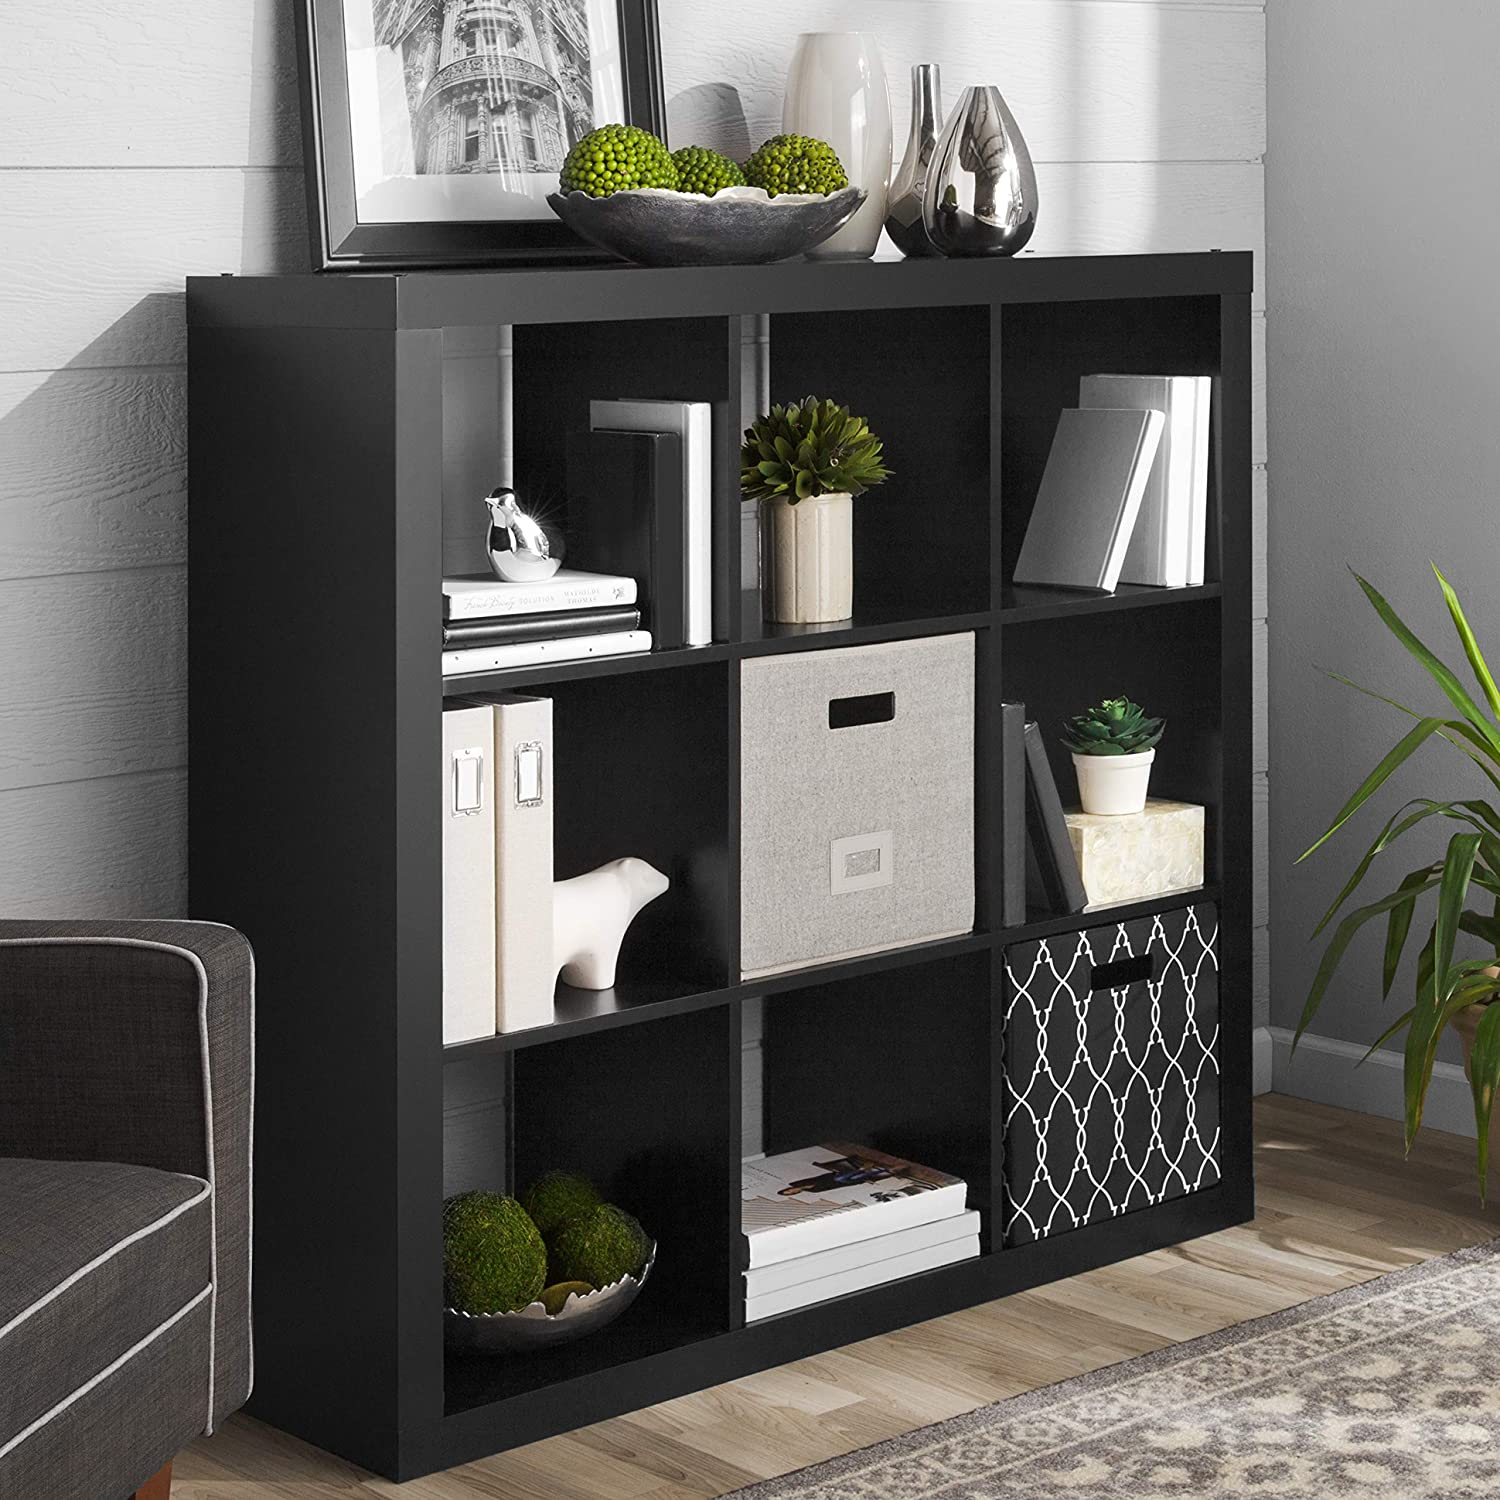 Better Homes and Gardens 9-Cube Organizer in Solid Black